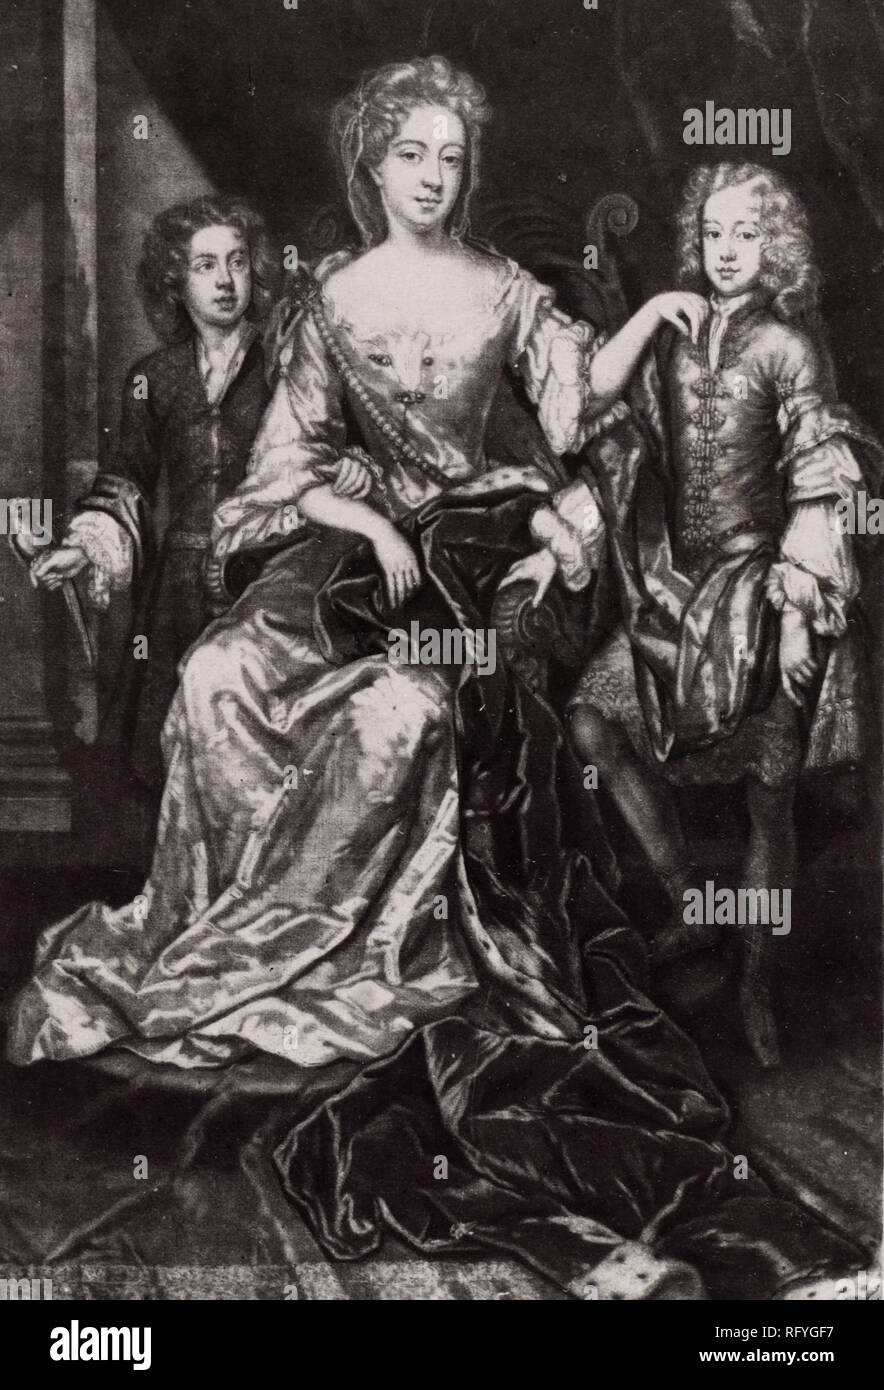 Anna, Duchess of Buccleuch and sons. Anne Scott, 1st Duchess of Buccleuch (1651 – 1732) wealthy Scottish peer. - Stock Image